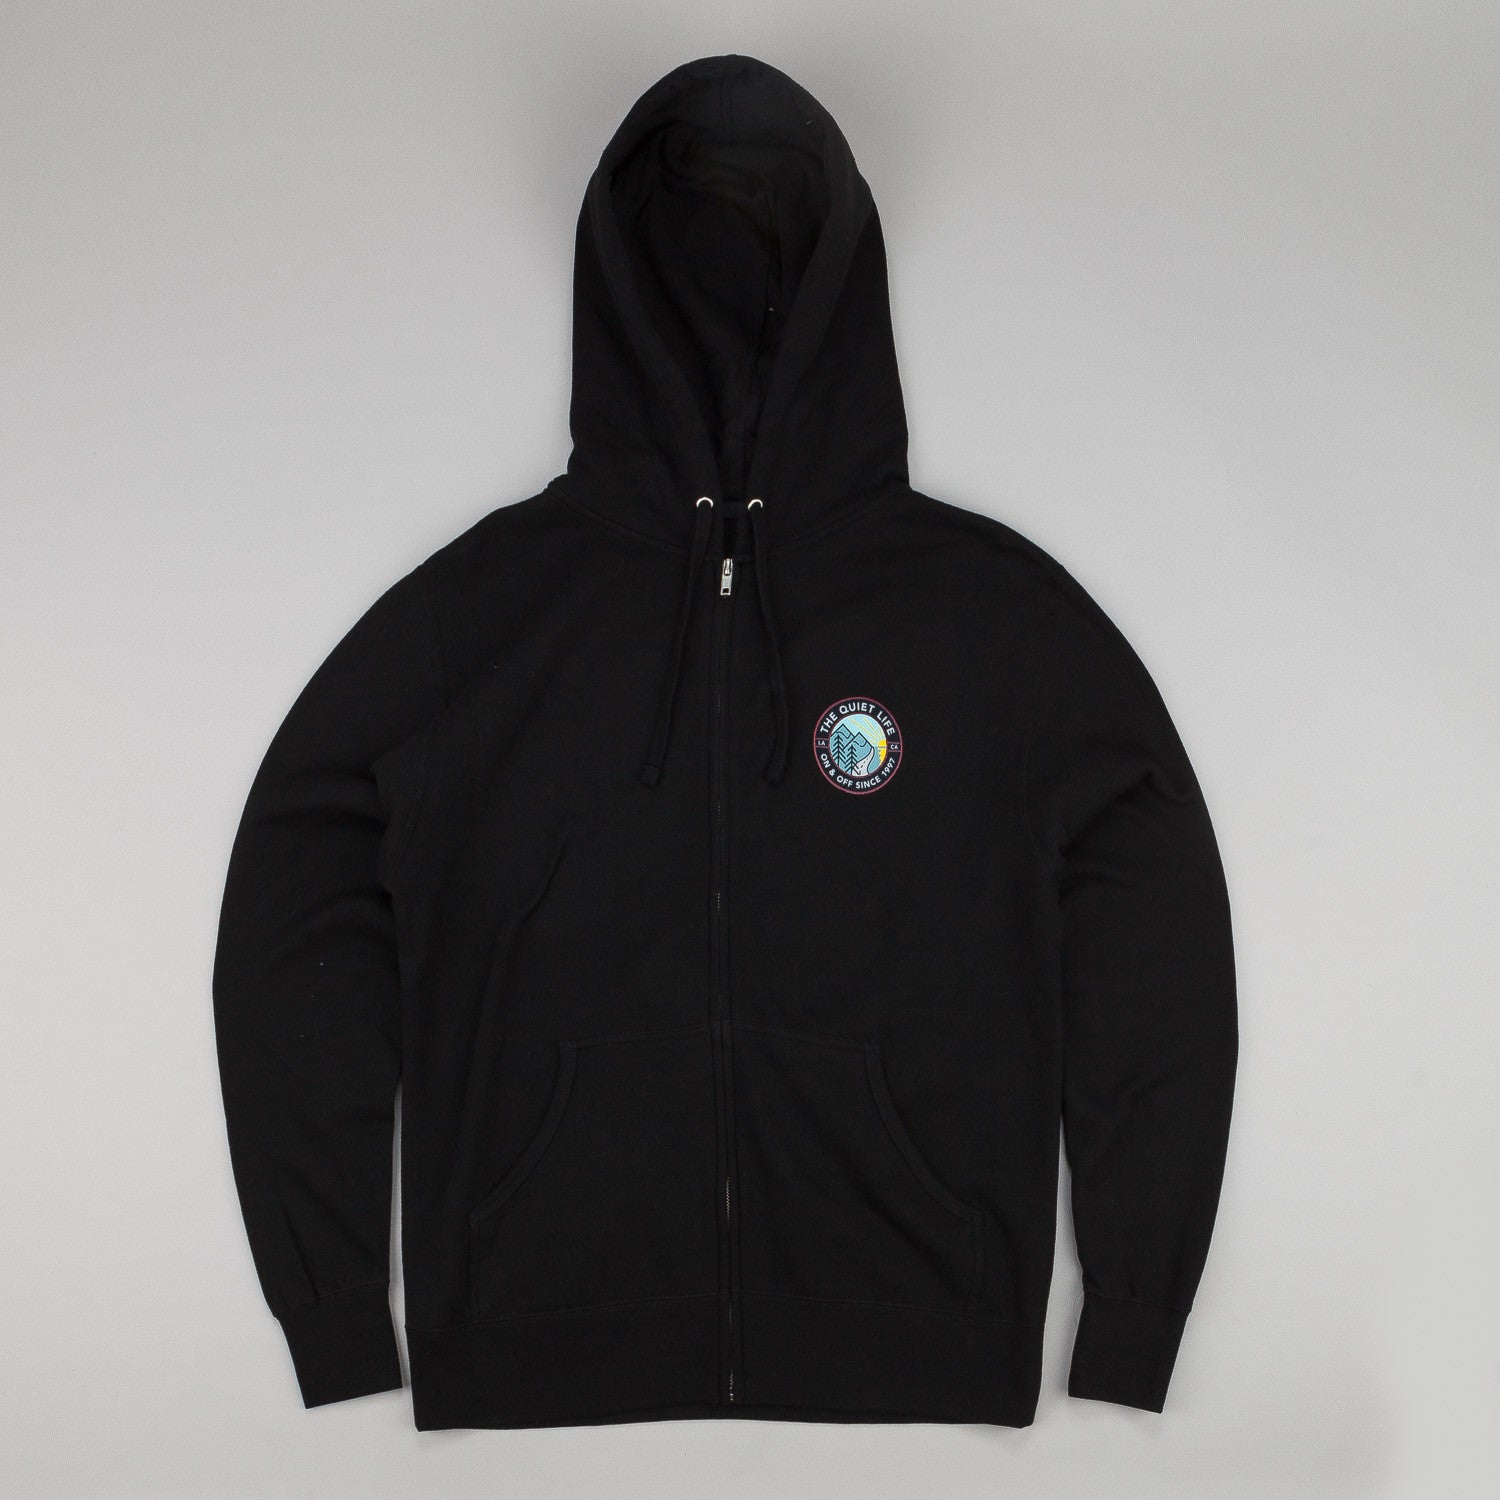 The Quiet Life Explorer Zip Hooded Sweatshirt